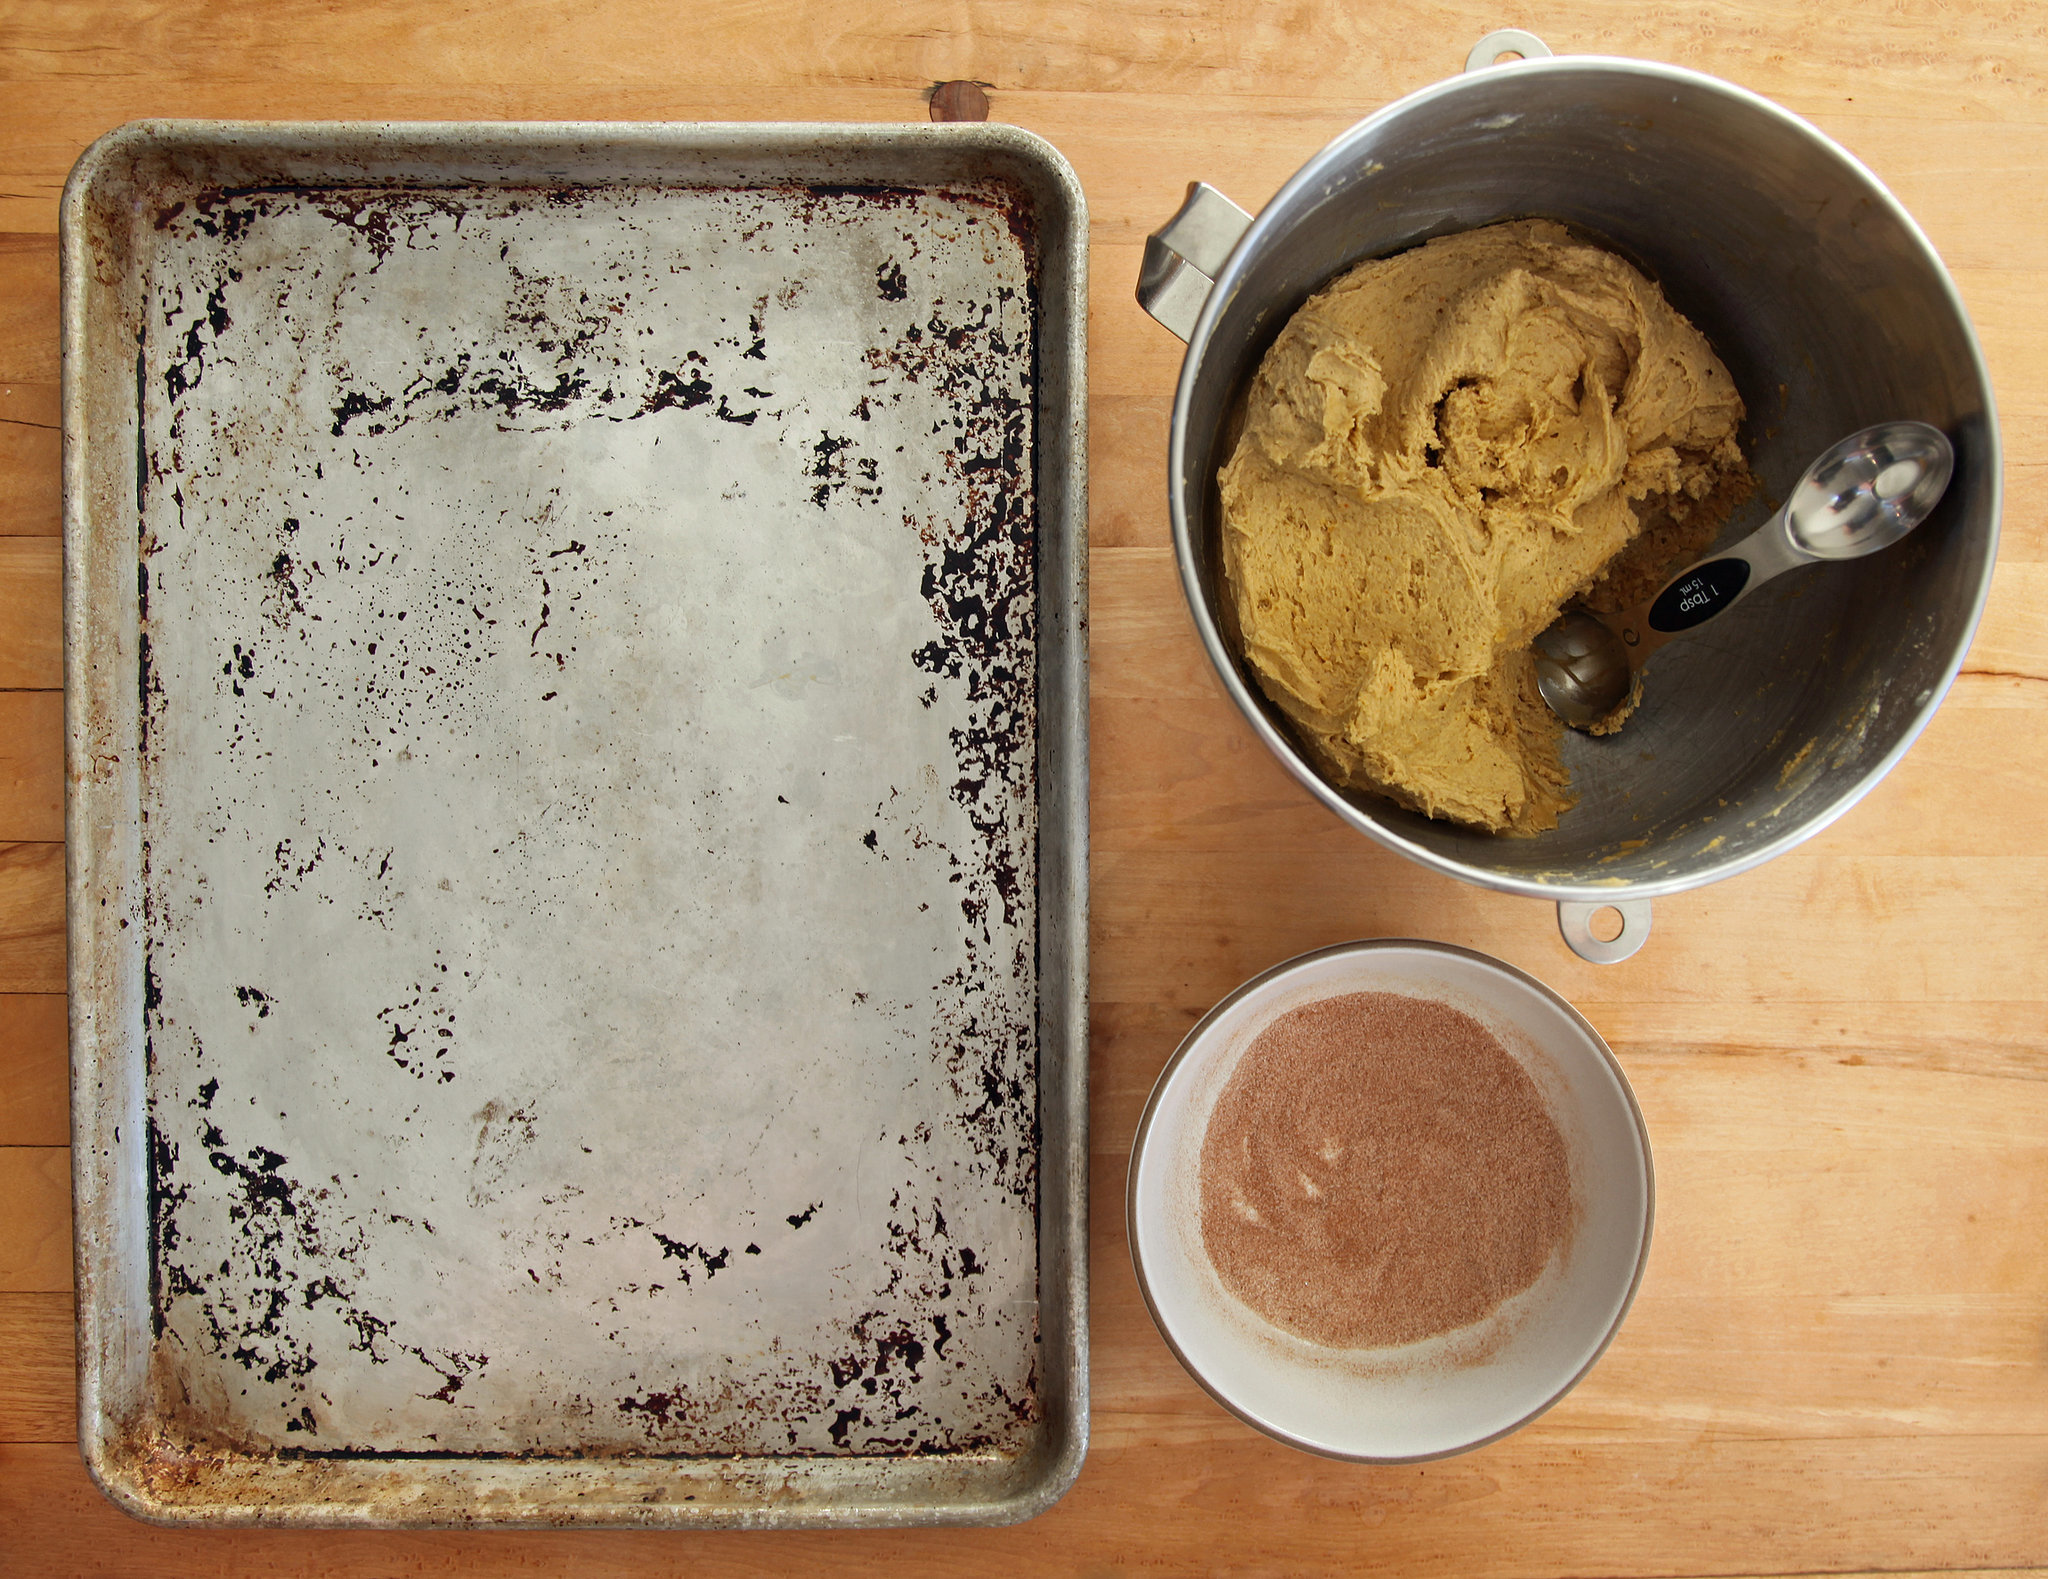 Pumpkin Spice Snickerdoodles Are Like a Bear Hug on a Dreary Day PopsugarLivingFast And EasyPumpkin Spice Snickerdoodles RecipePumpkin Spice Snickerdoodles Are Like a Bear Hug on a Dreary Day November 19, 2015 by Nicole Perry First Published: October 22, 2015 1.3K Shares Chat with us on Facebook Messenger. Learn what's trending across POPSUGAR.My go-to snickerdoodle recipe comes from a bakery I've never visited, of which I know little about. In fact, I'm not entirely sure how a copy of Rosie's Bakery Chocolate-Packed, Jam-Filled, Butter-Rich, No-Holds-Barred Cookie Book came to be in my possession as an eager, young baker, but for years, it was my reference for all things cookie-related — the tender, chewy-edged snickerdoodle recipe being a personal favorite. I've made the recipe in its classic cinnamon-spiced iteration countless times, and it still holds up; really, no other snickerdoodle I've eaten quite compares. This Fall, I decided it was high time it received an autumnal update, so after a bit of twea - 웹